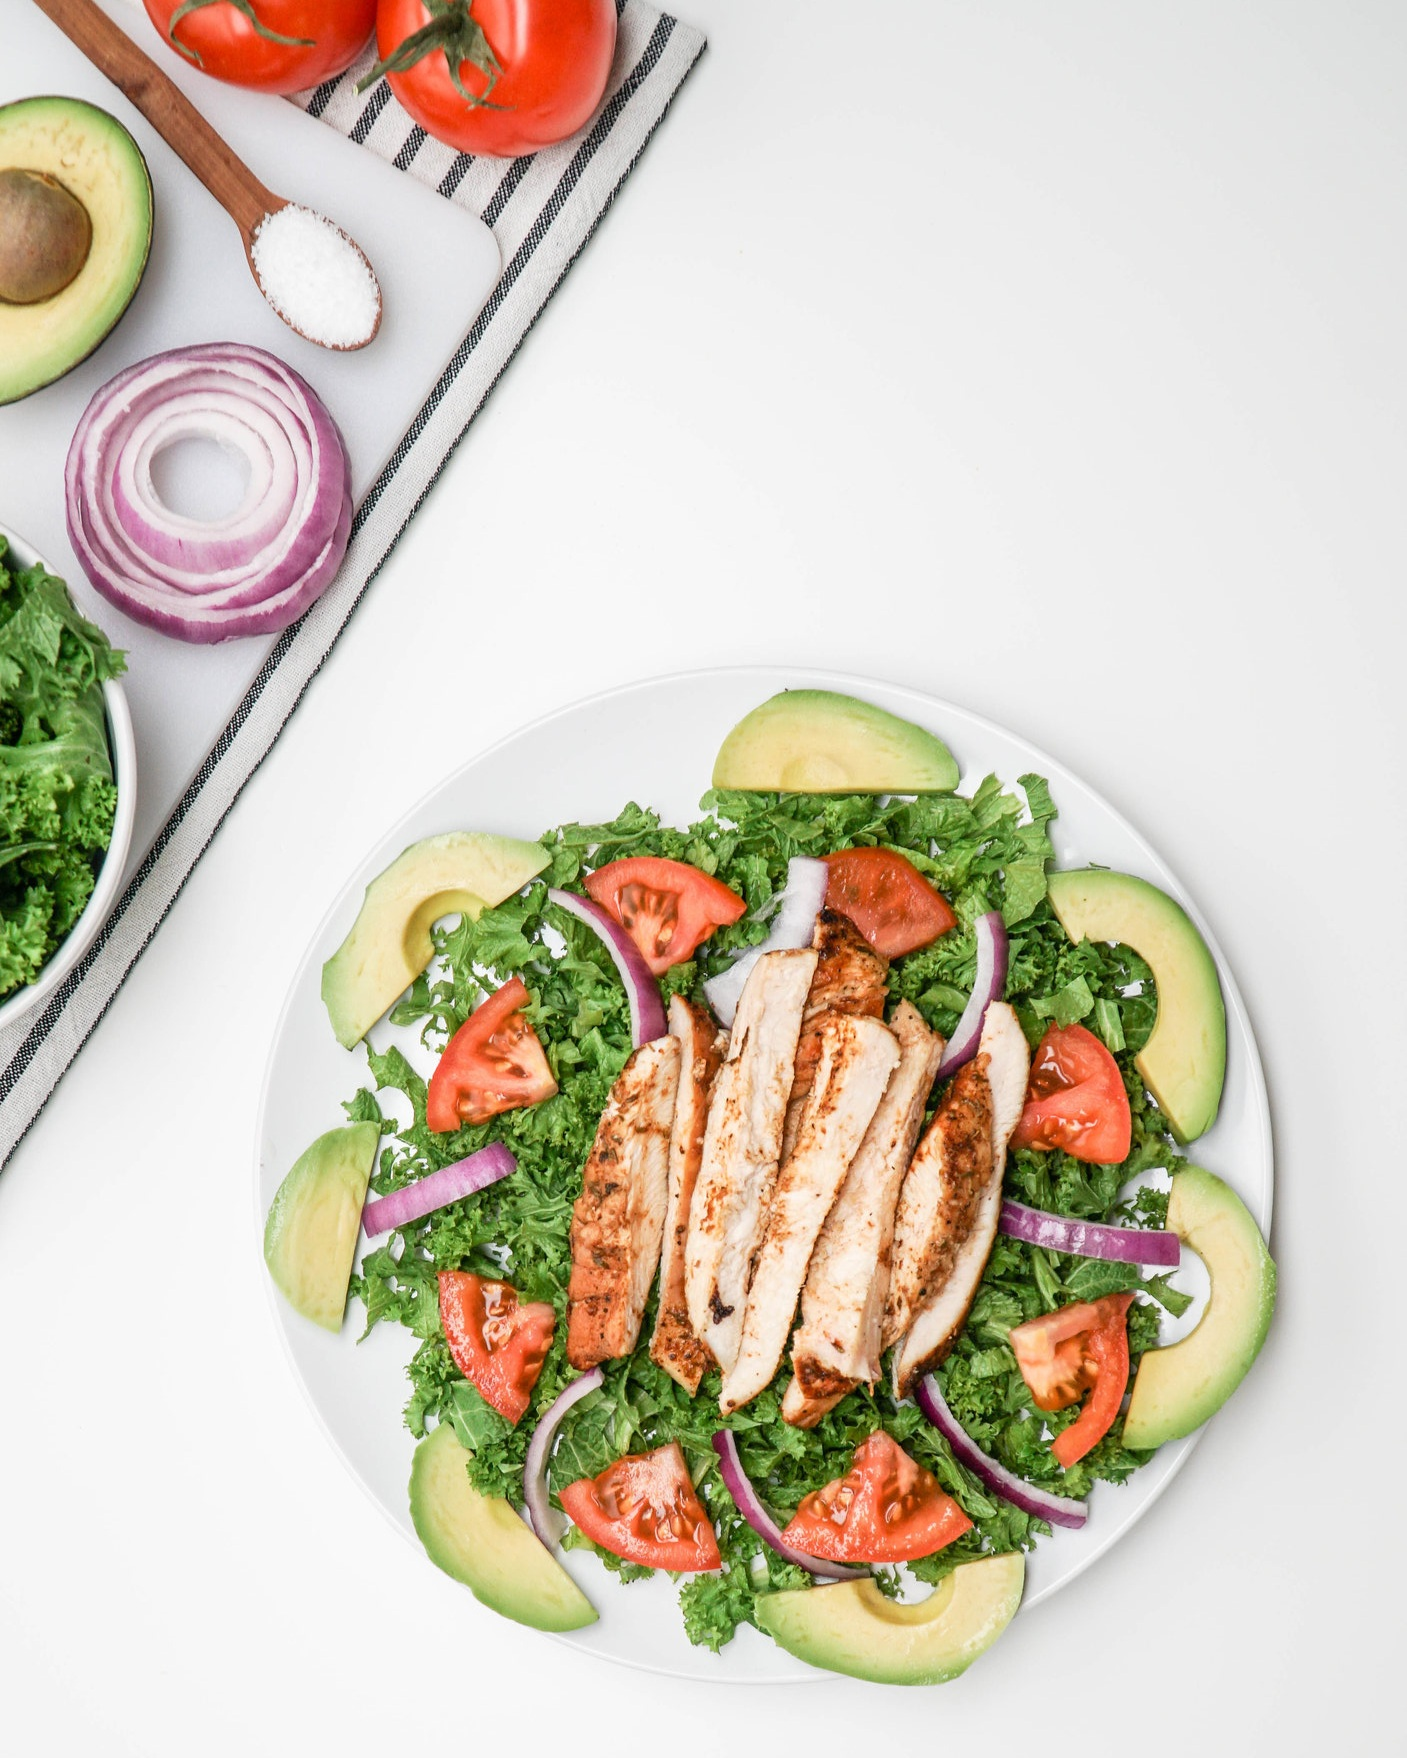 A plate of Cajun Chicken with Greens Avocado and Tomato Salad